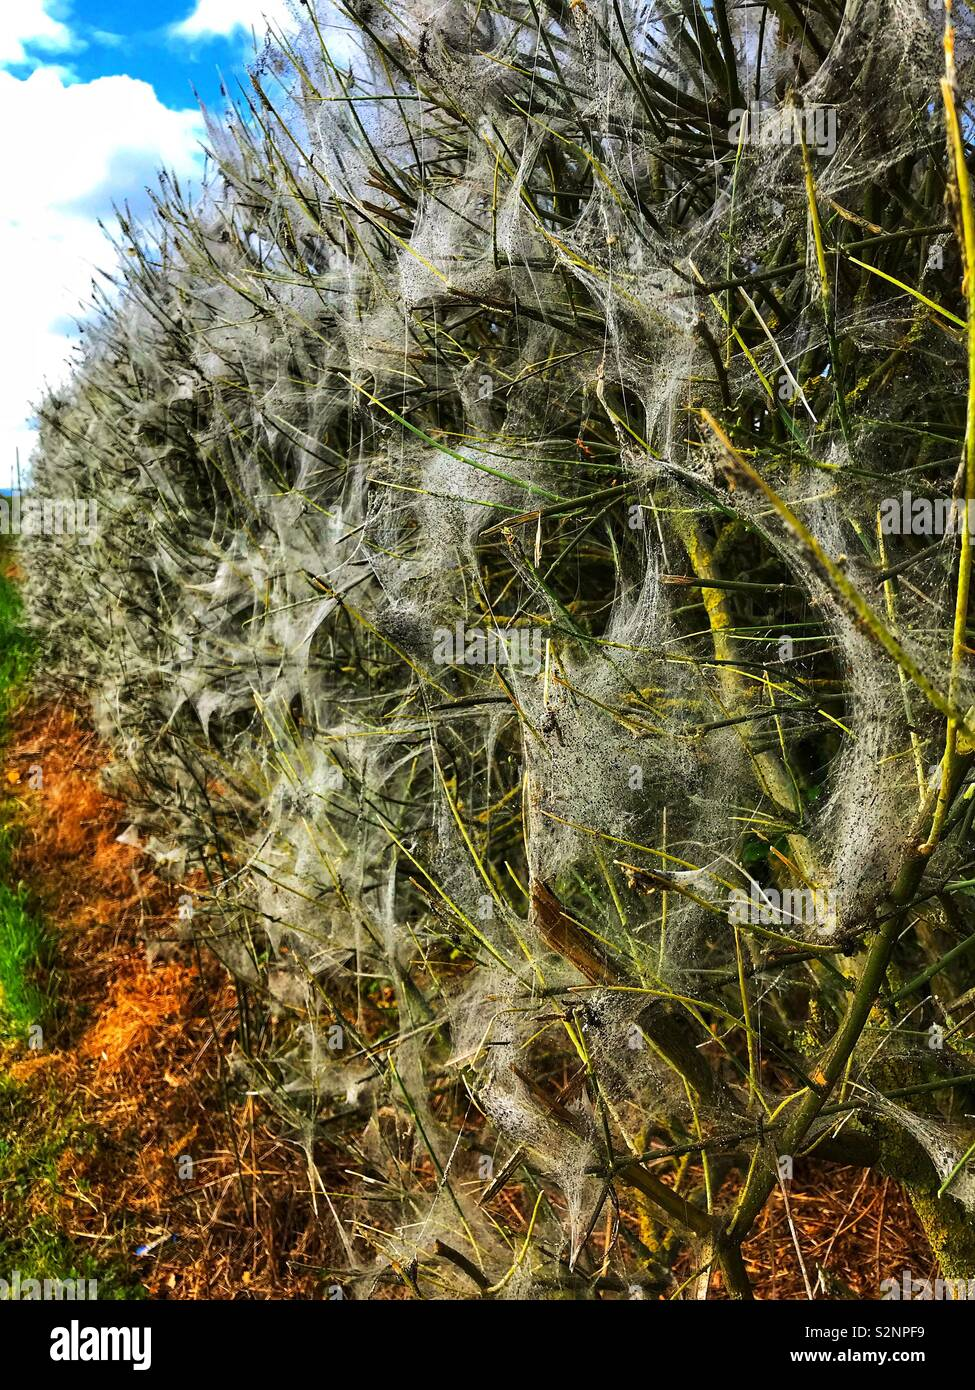 Spiders webs in a hedge - Stock Image